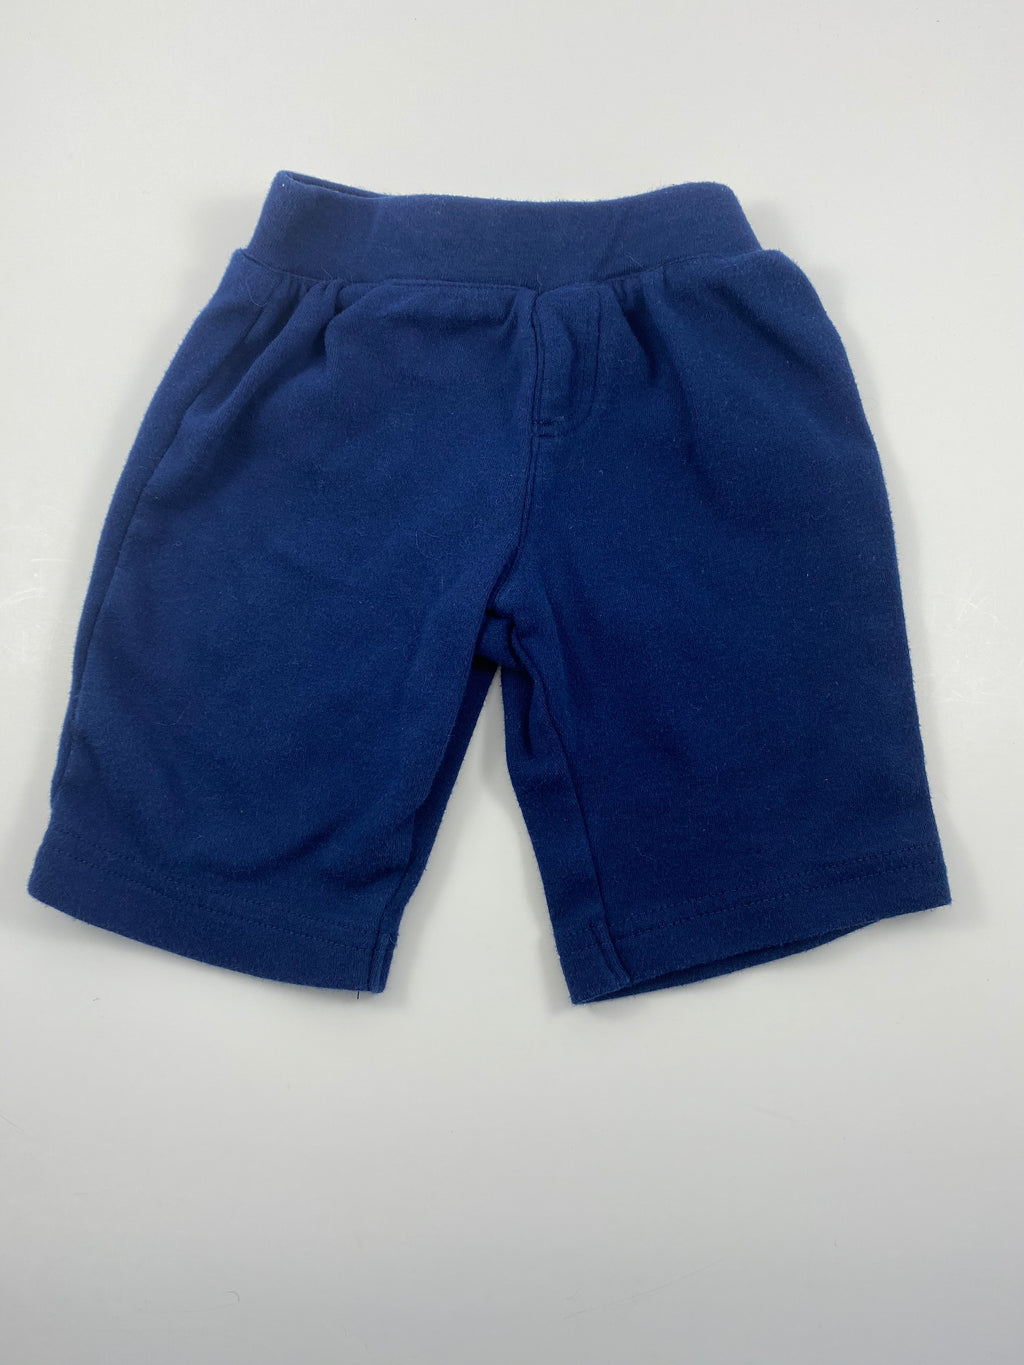 Boy's Pants - Size 0-3mo